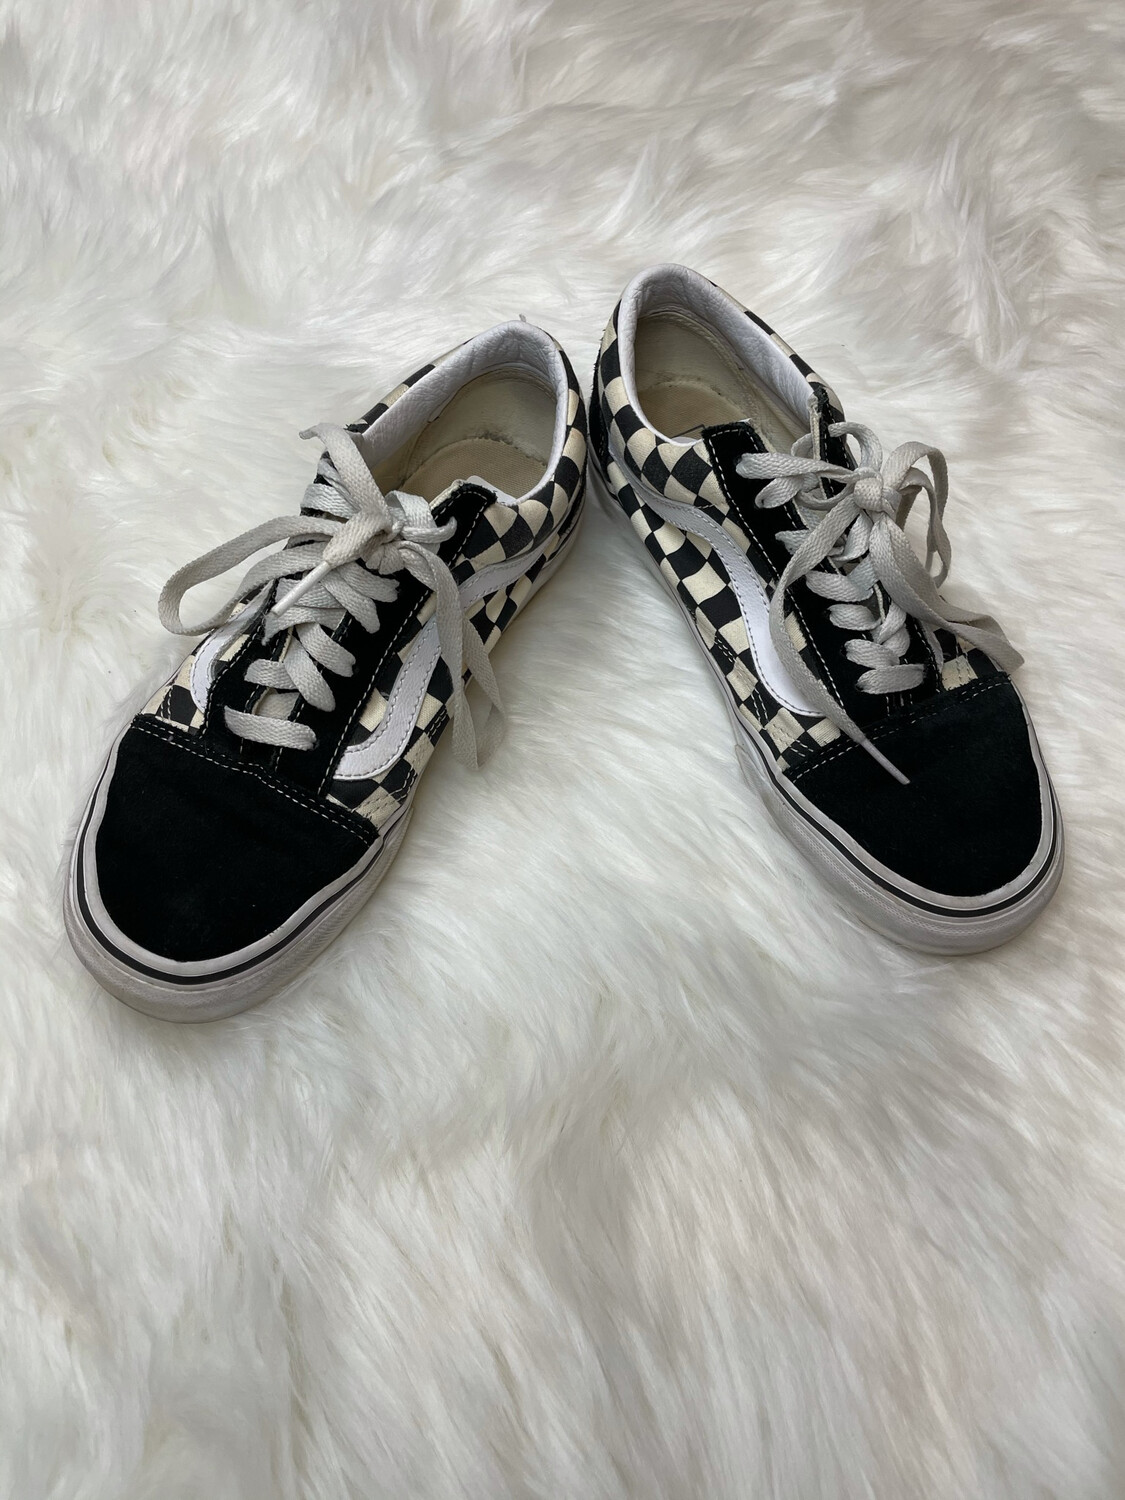 Vans Black & White Checkered Sneakers - Size 7.5